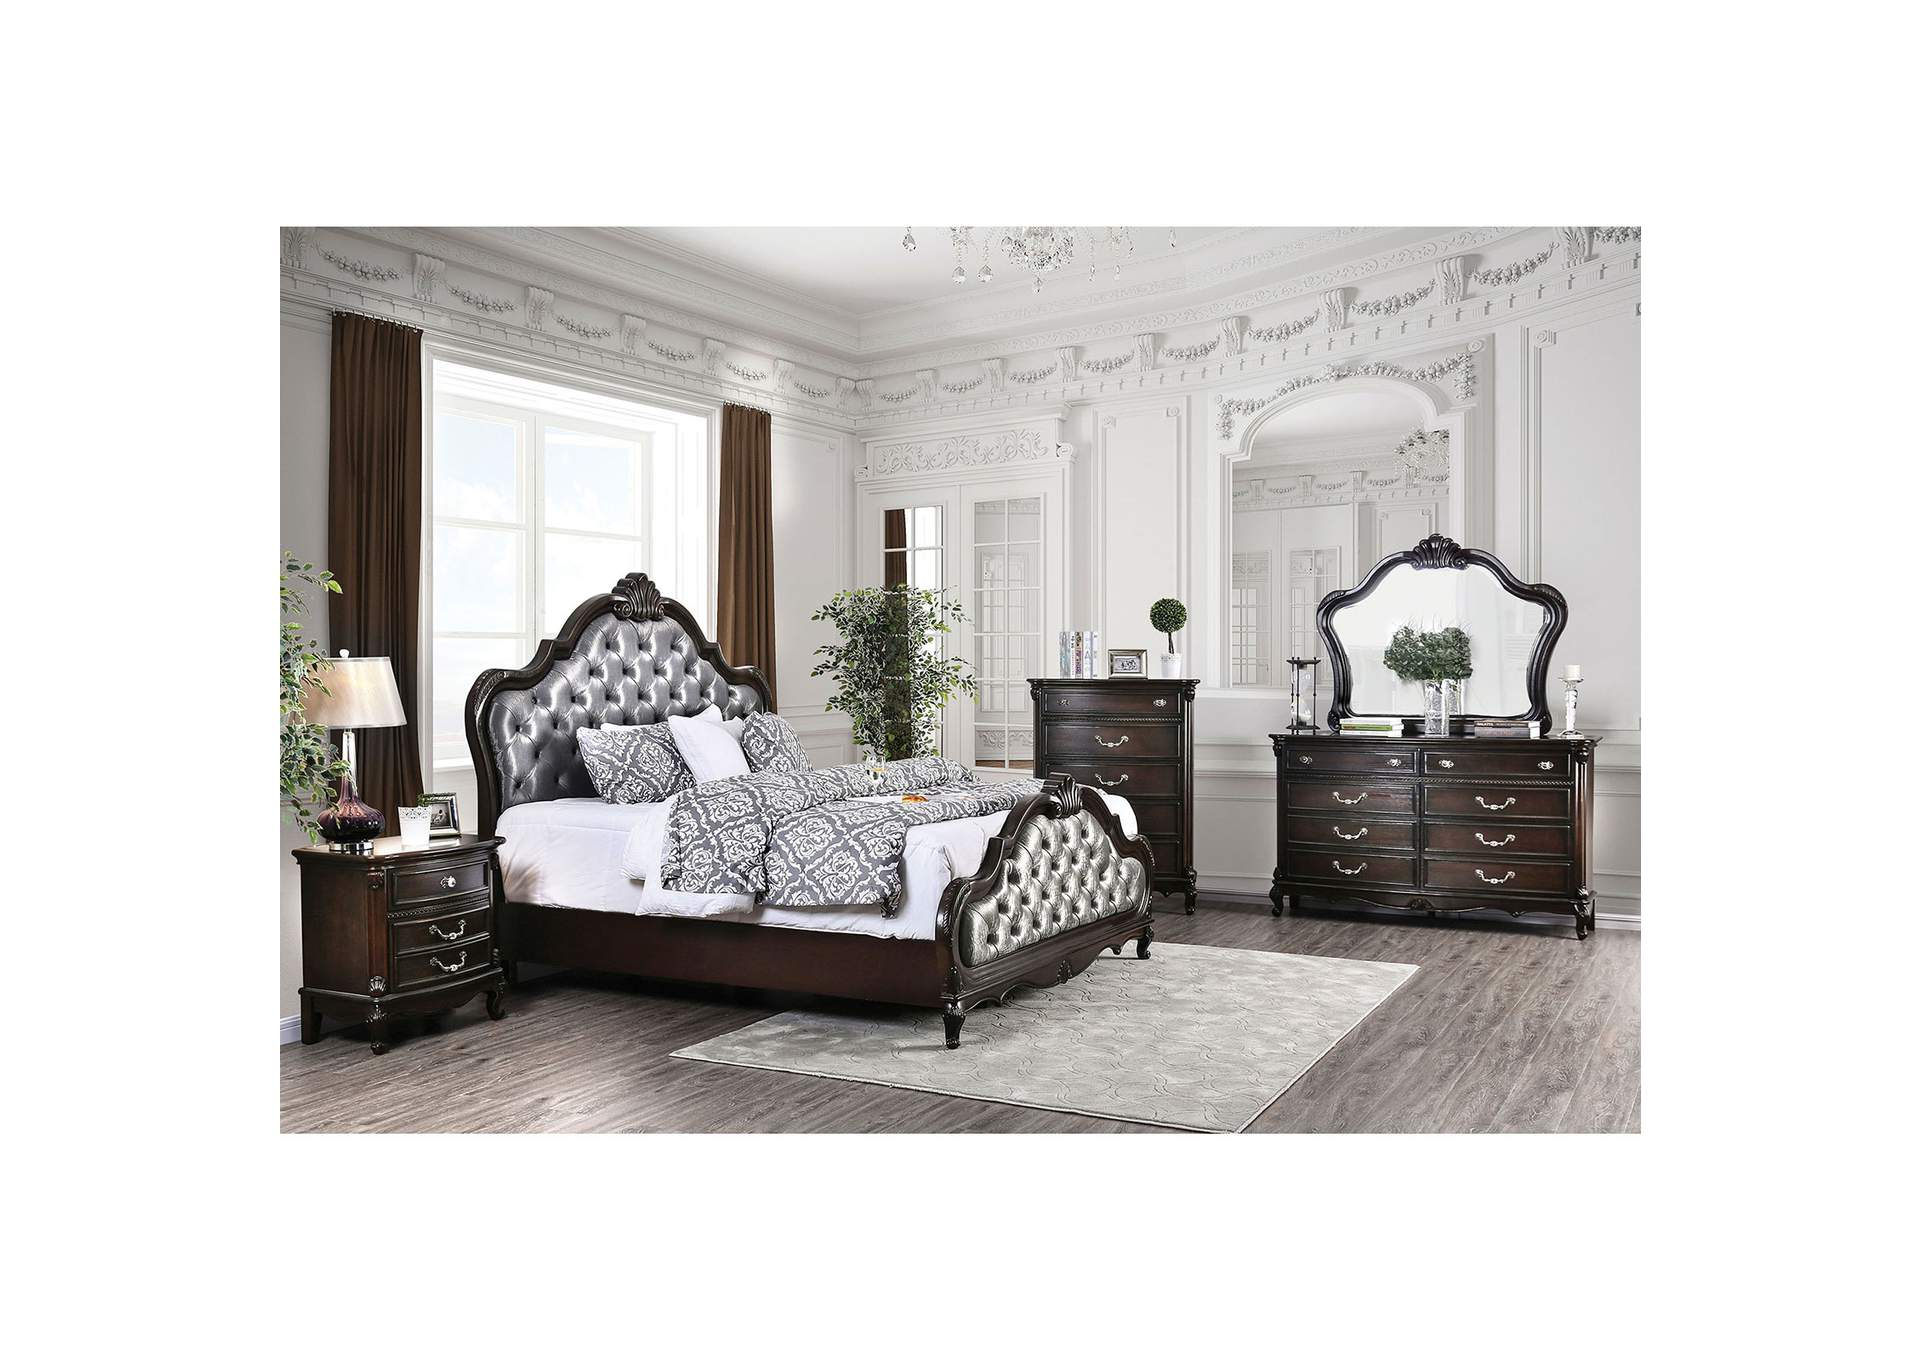 Bethesda Espresso Upholstered Queen Panel Bed w/Dresser and Mirror,Furniture of America